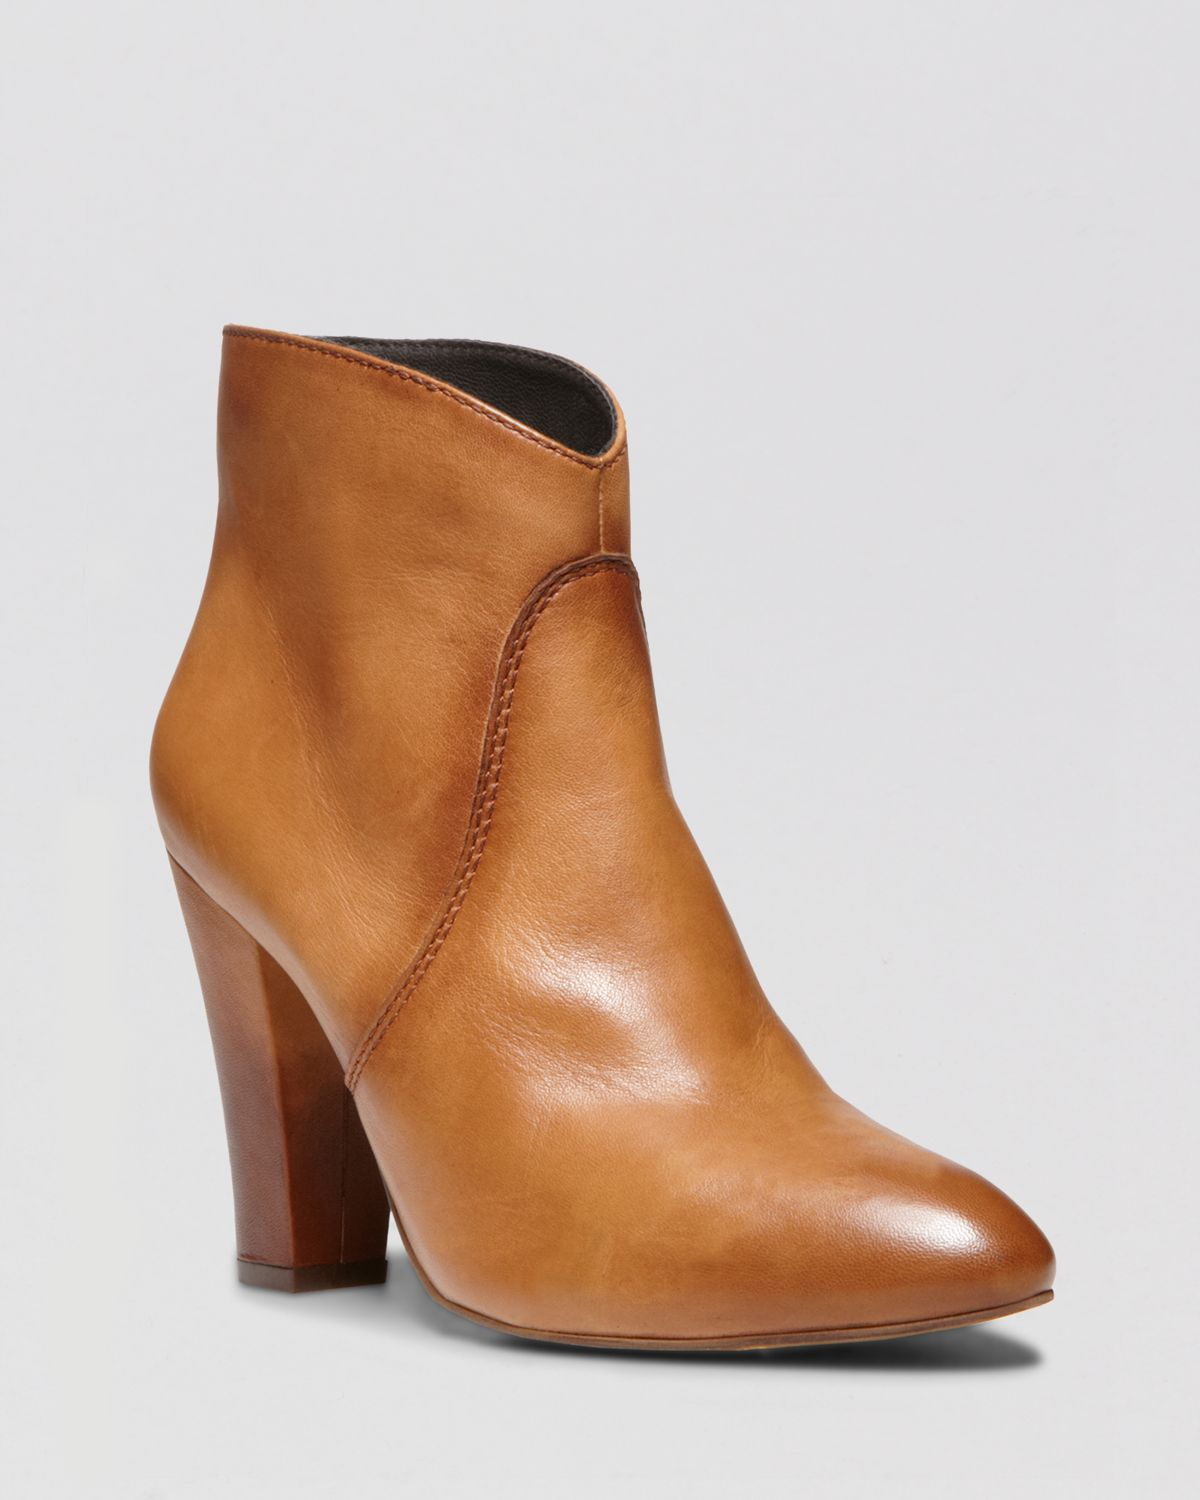 STEVEN BY STEVE MADDEN Booties - Bailen High Heel | Bloomingdale's